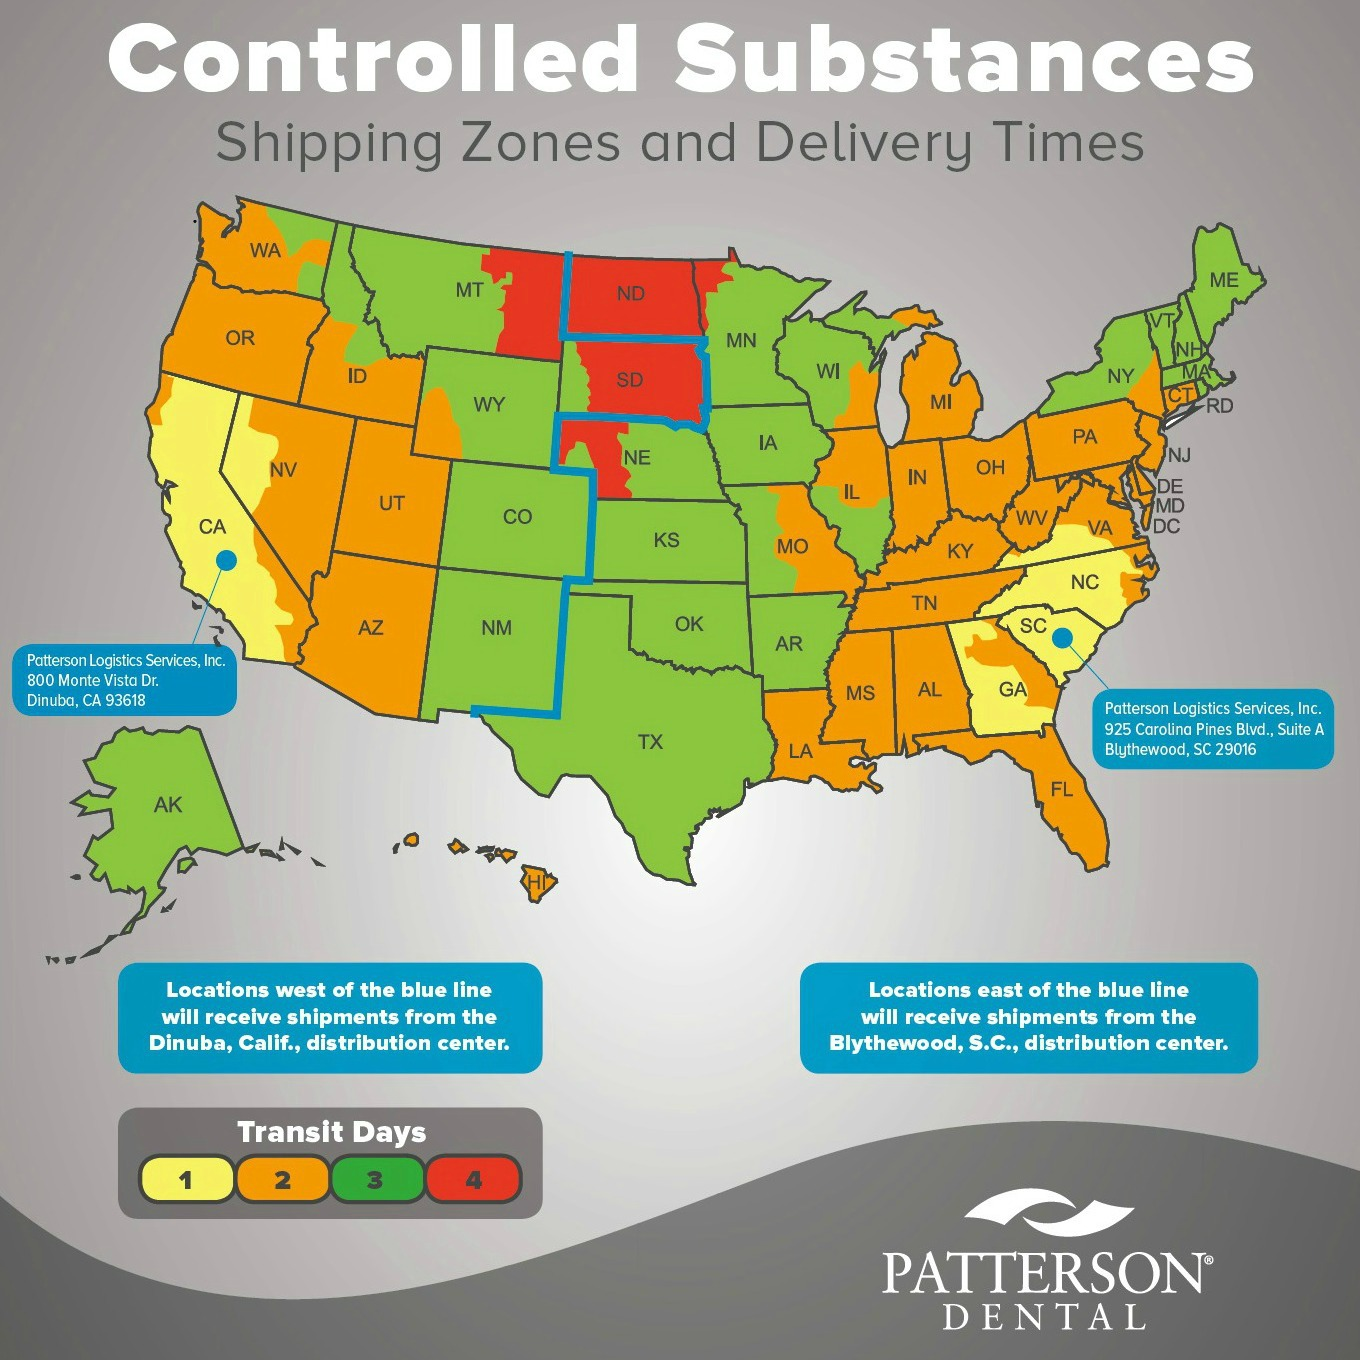 controlled substances fulfilment center map